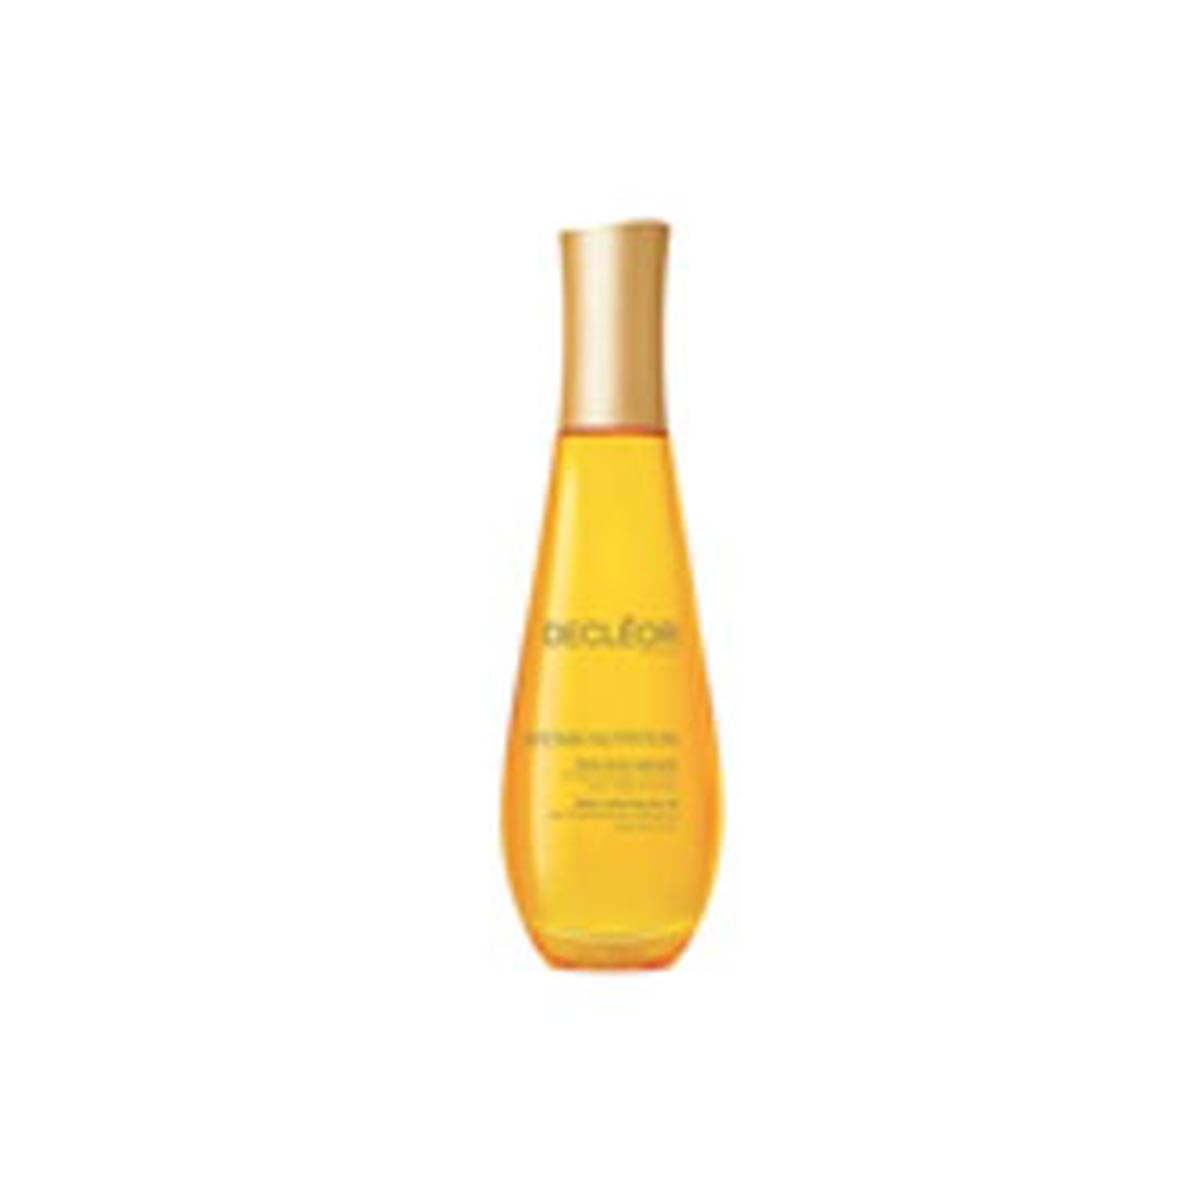 Decleor aroma nutrition huile seche satinate 100ml